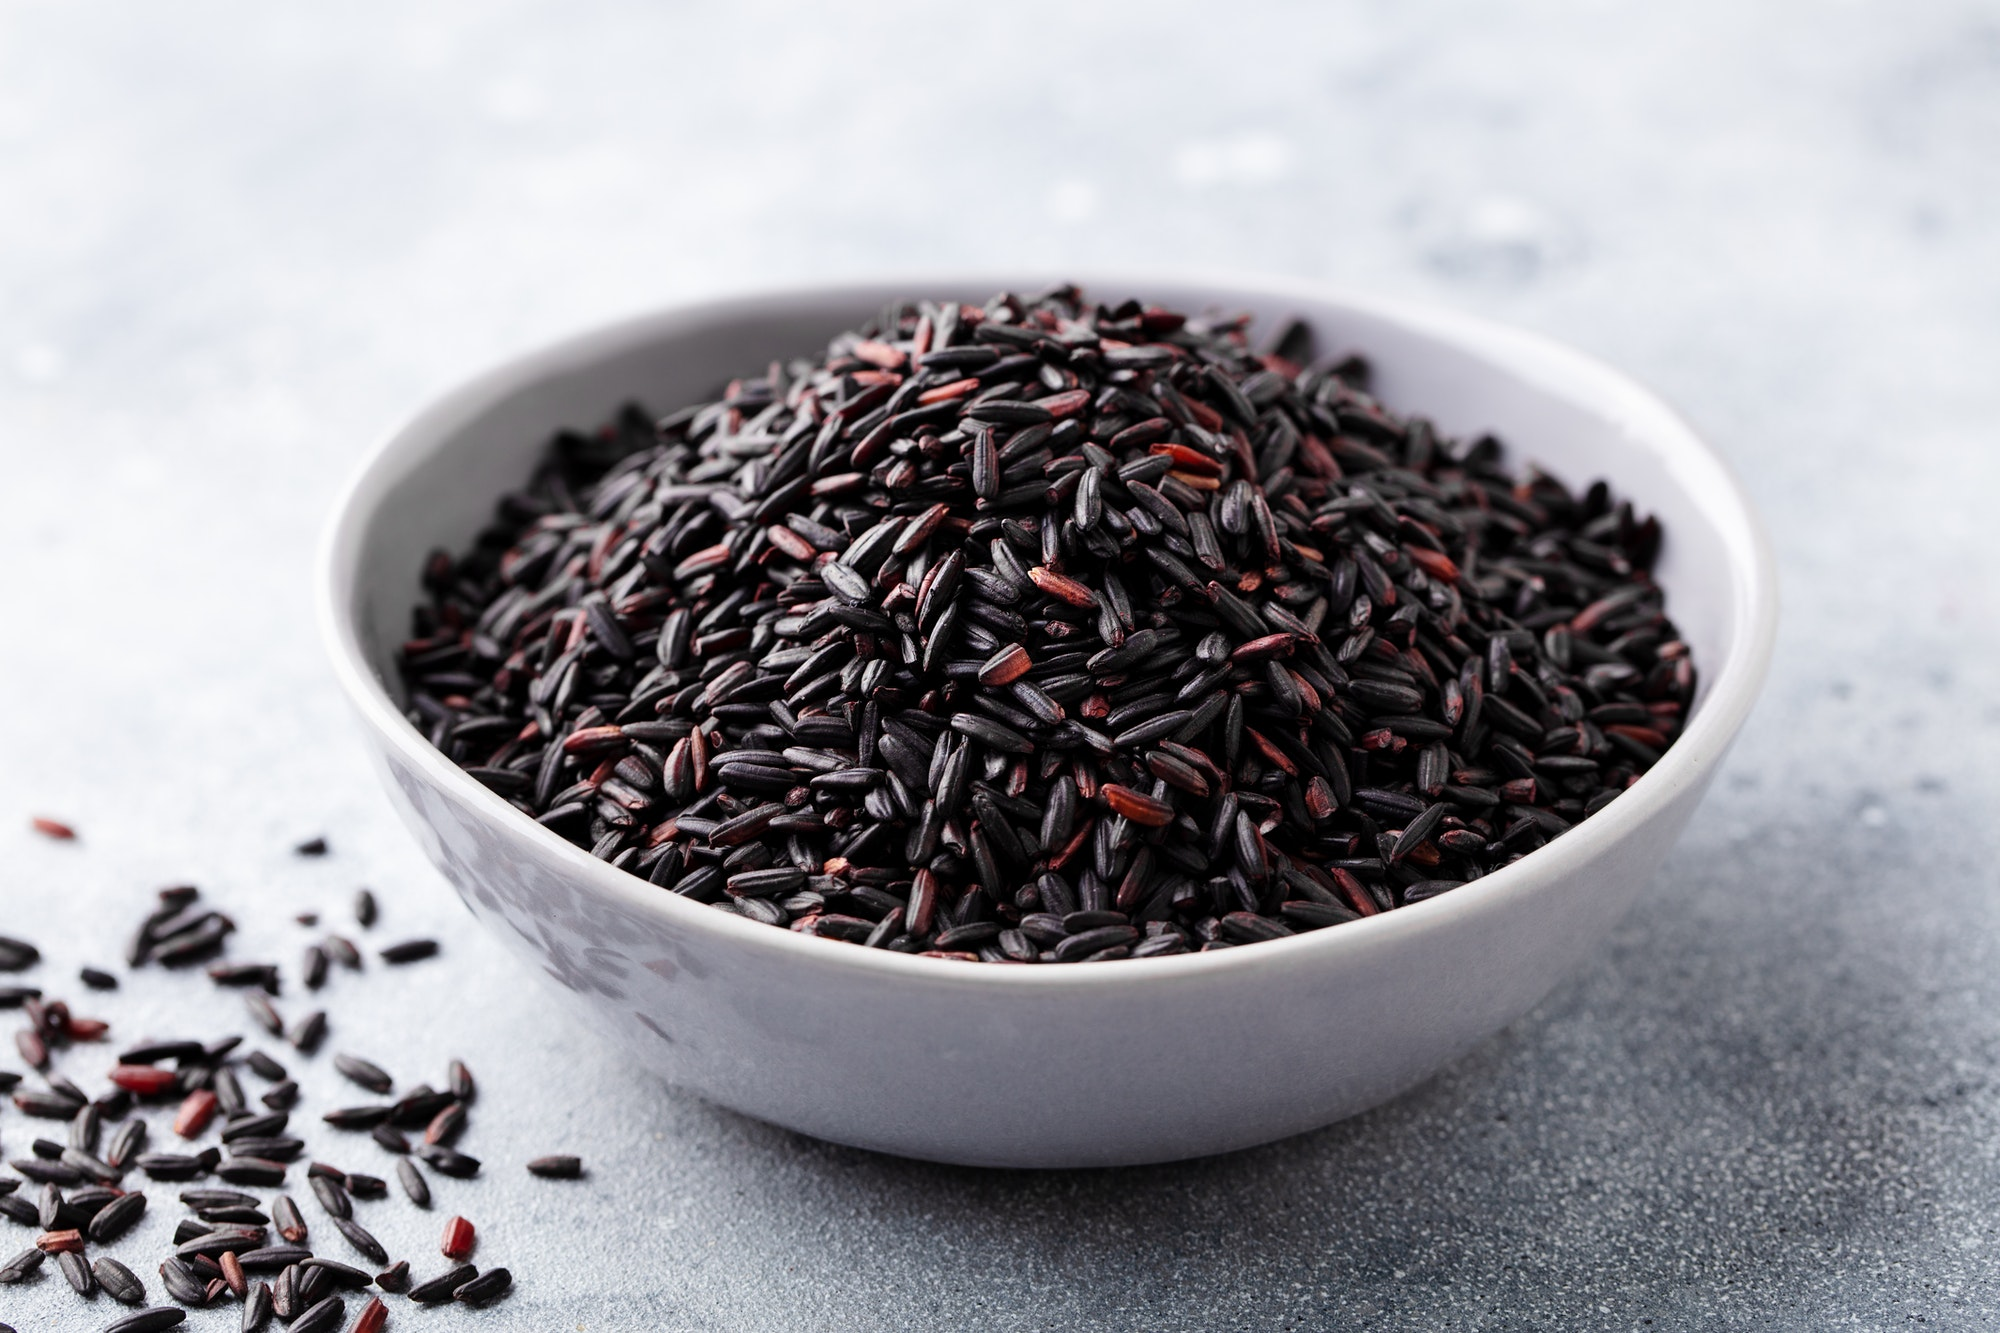 Black wild rice in a bowl. Grey stone background. Close up.